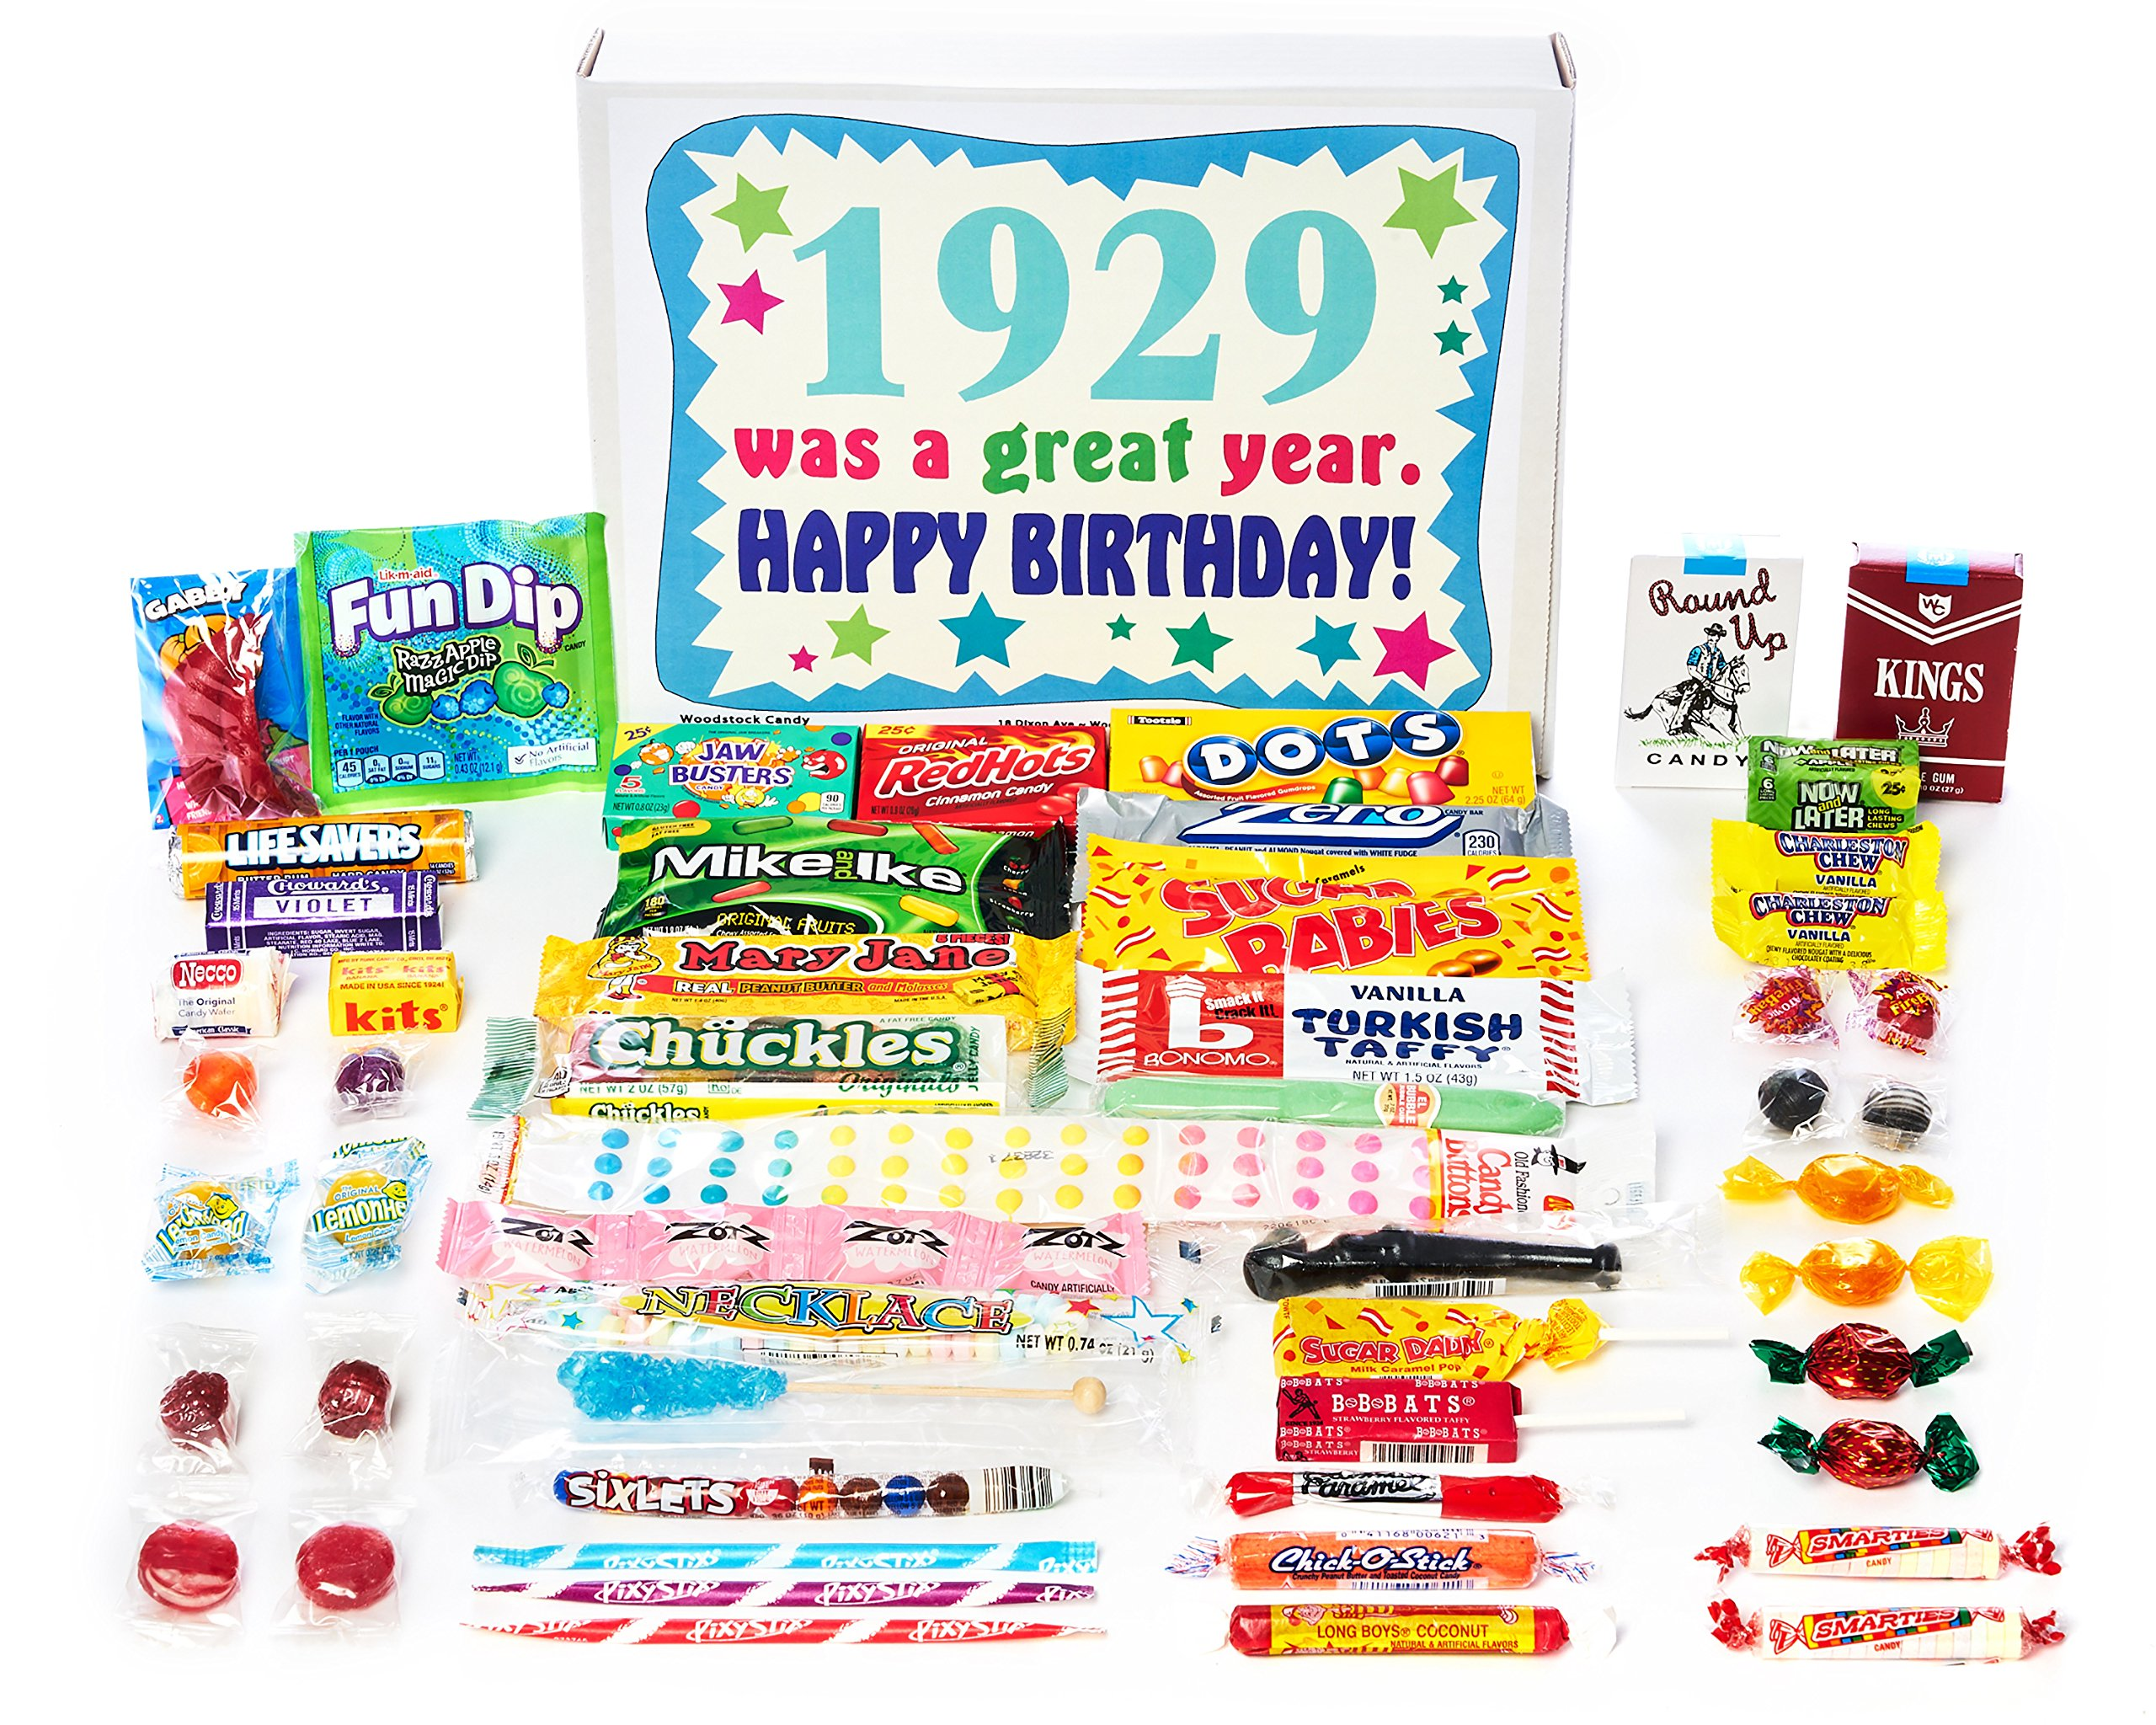 Woodstock Candy ~ 1929 90th Birthday Gift Box of Nostalgic Candy from Childhood for 90 Year Old Man or Woman Born 1929